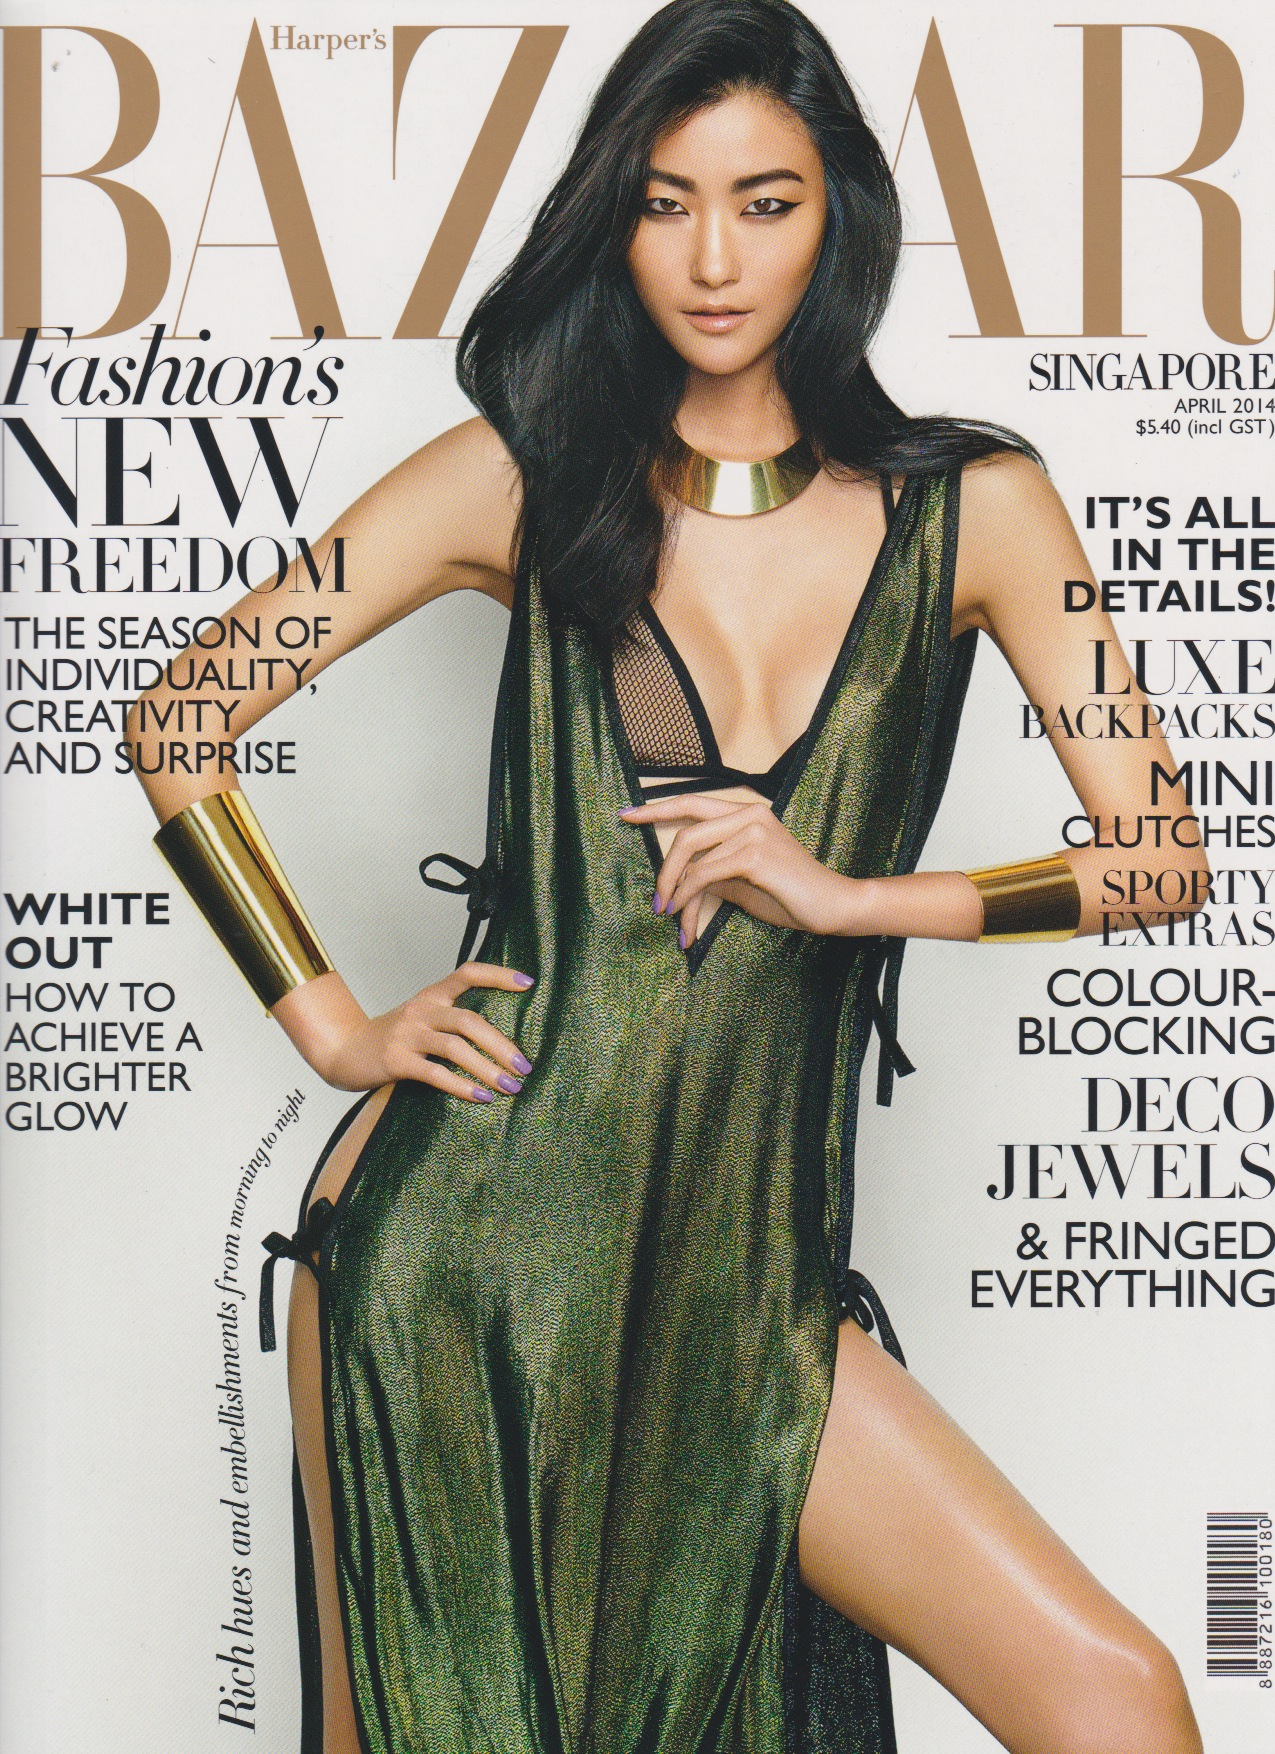 harpersbazaar_singapore_cover_april2014_150dpi